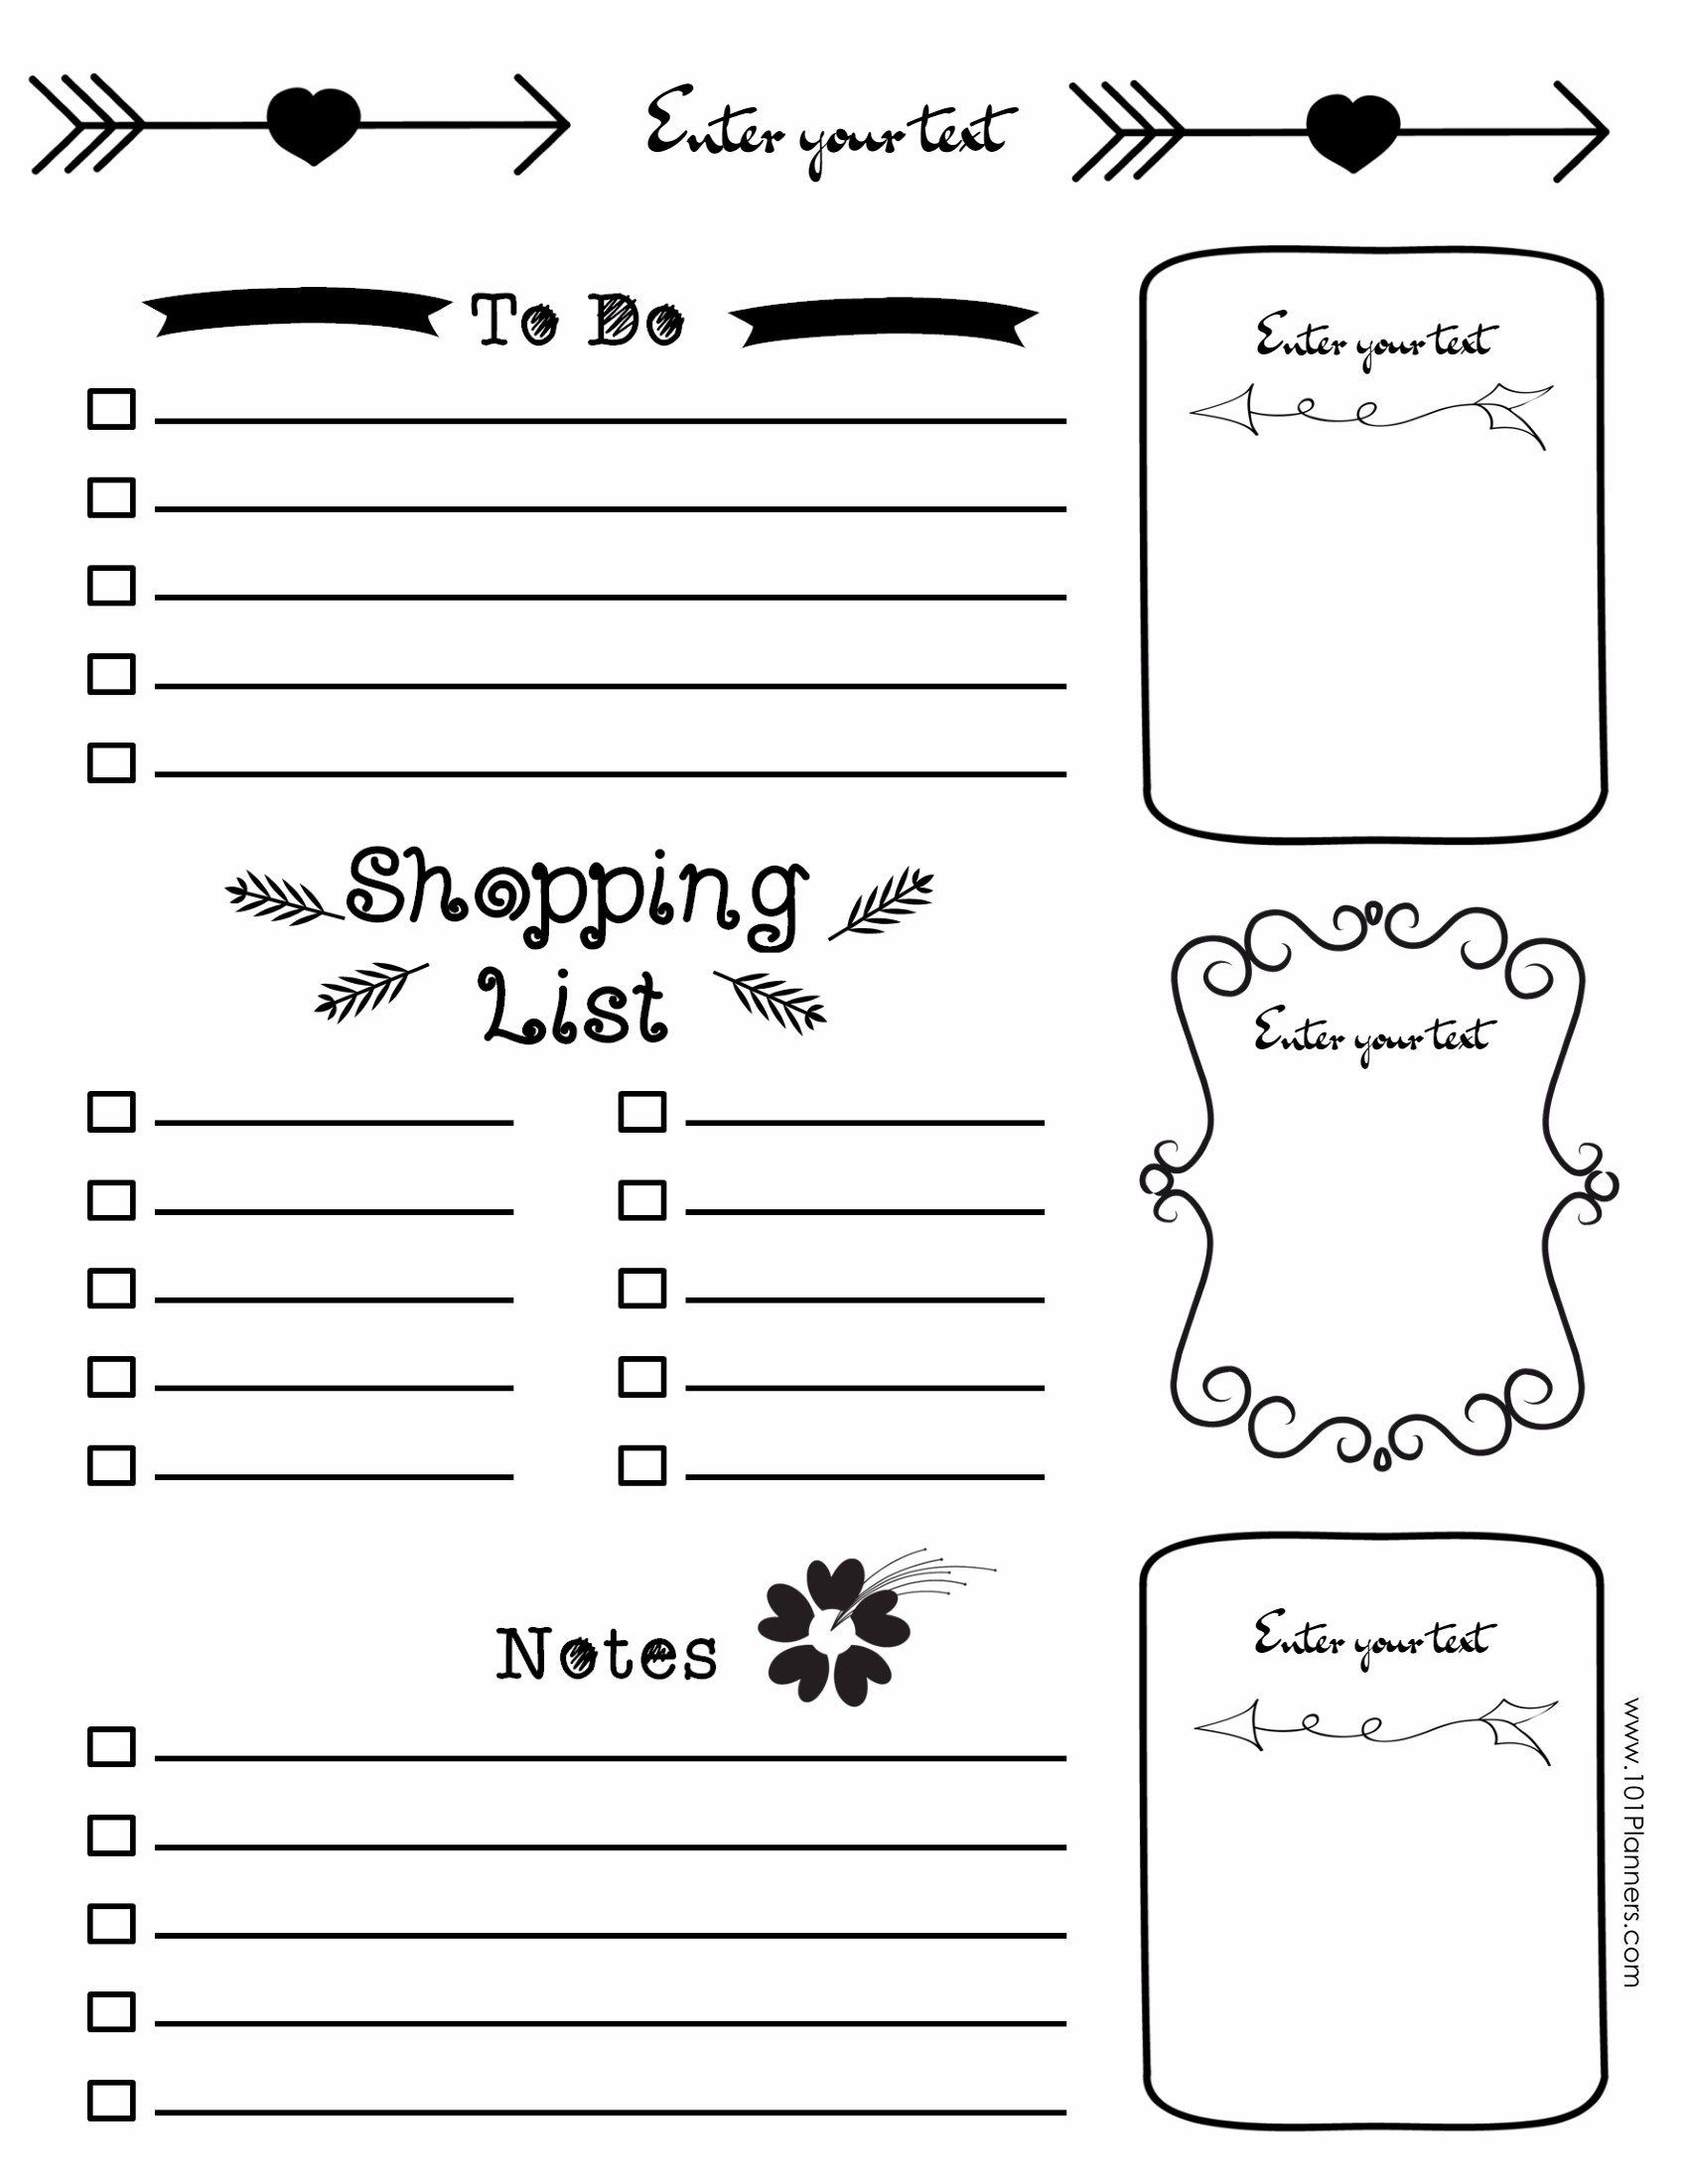 This is a graphic of Bullet Journal Printable with tracker